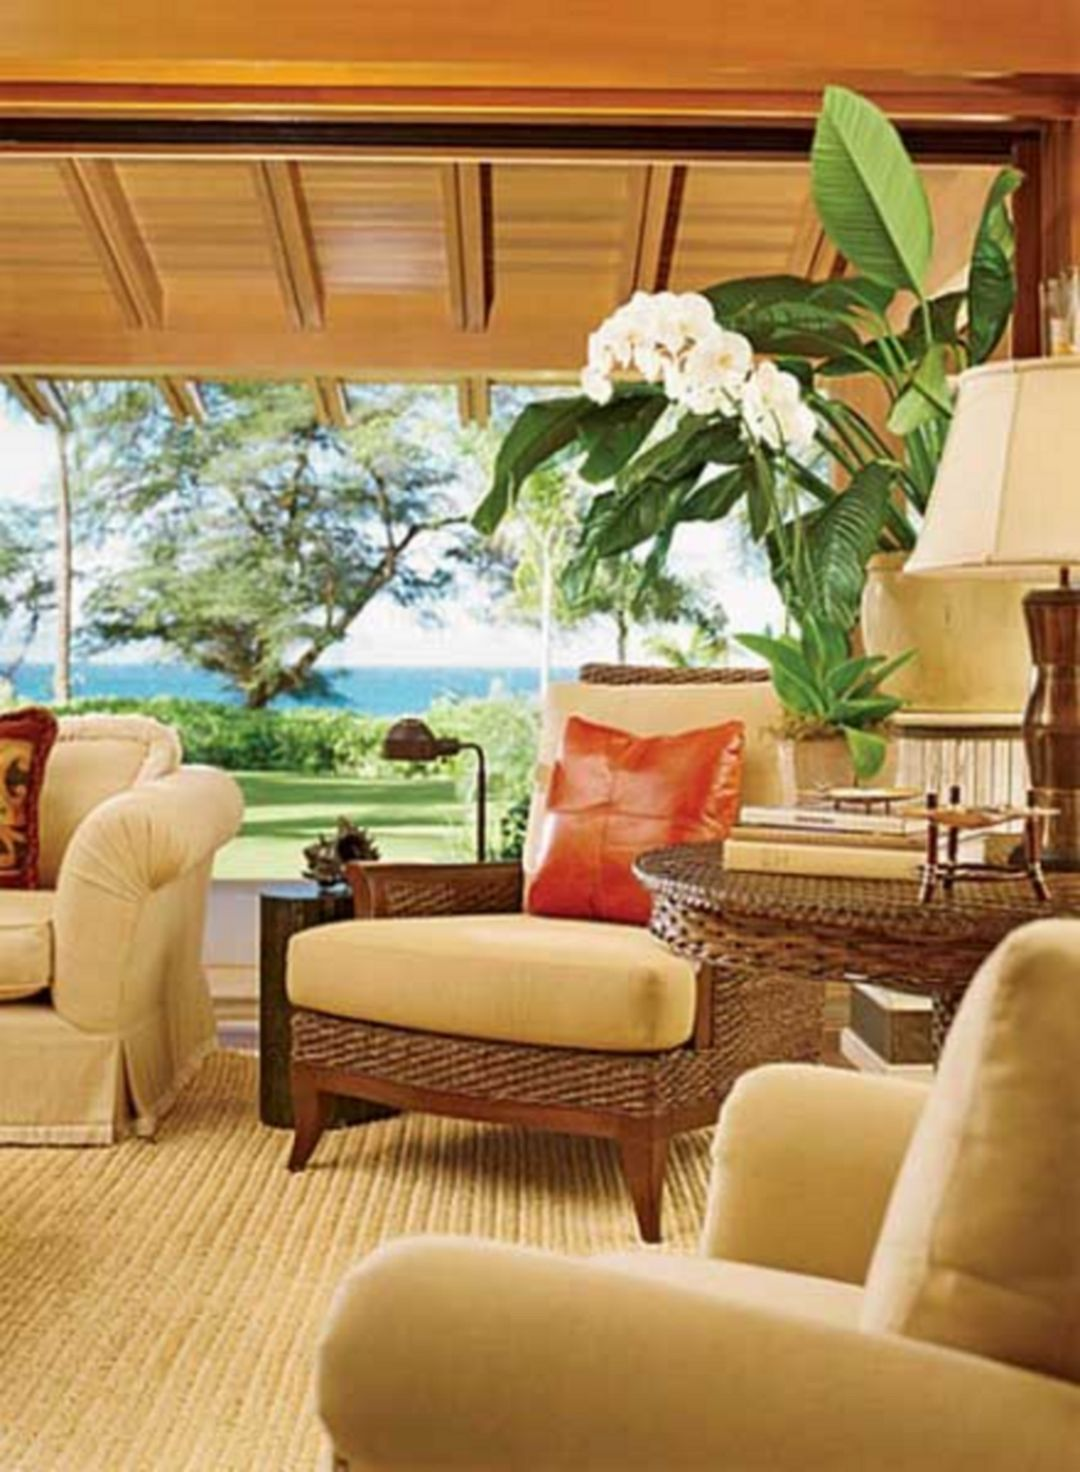 7+ Beautiful Hawaiian Home Decorating Ideas That Will Make Your